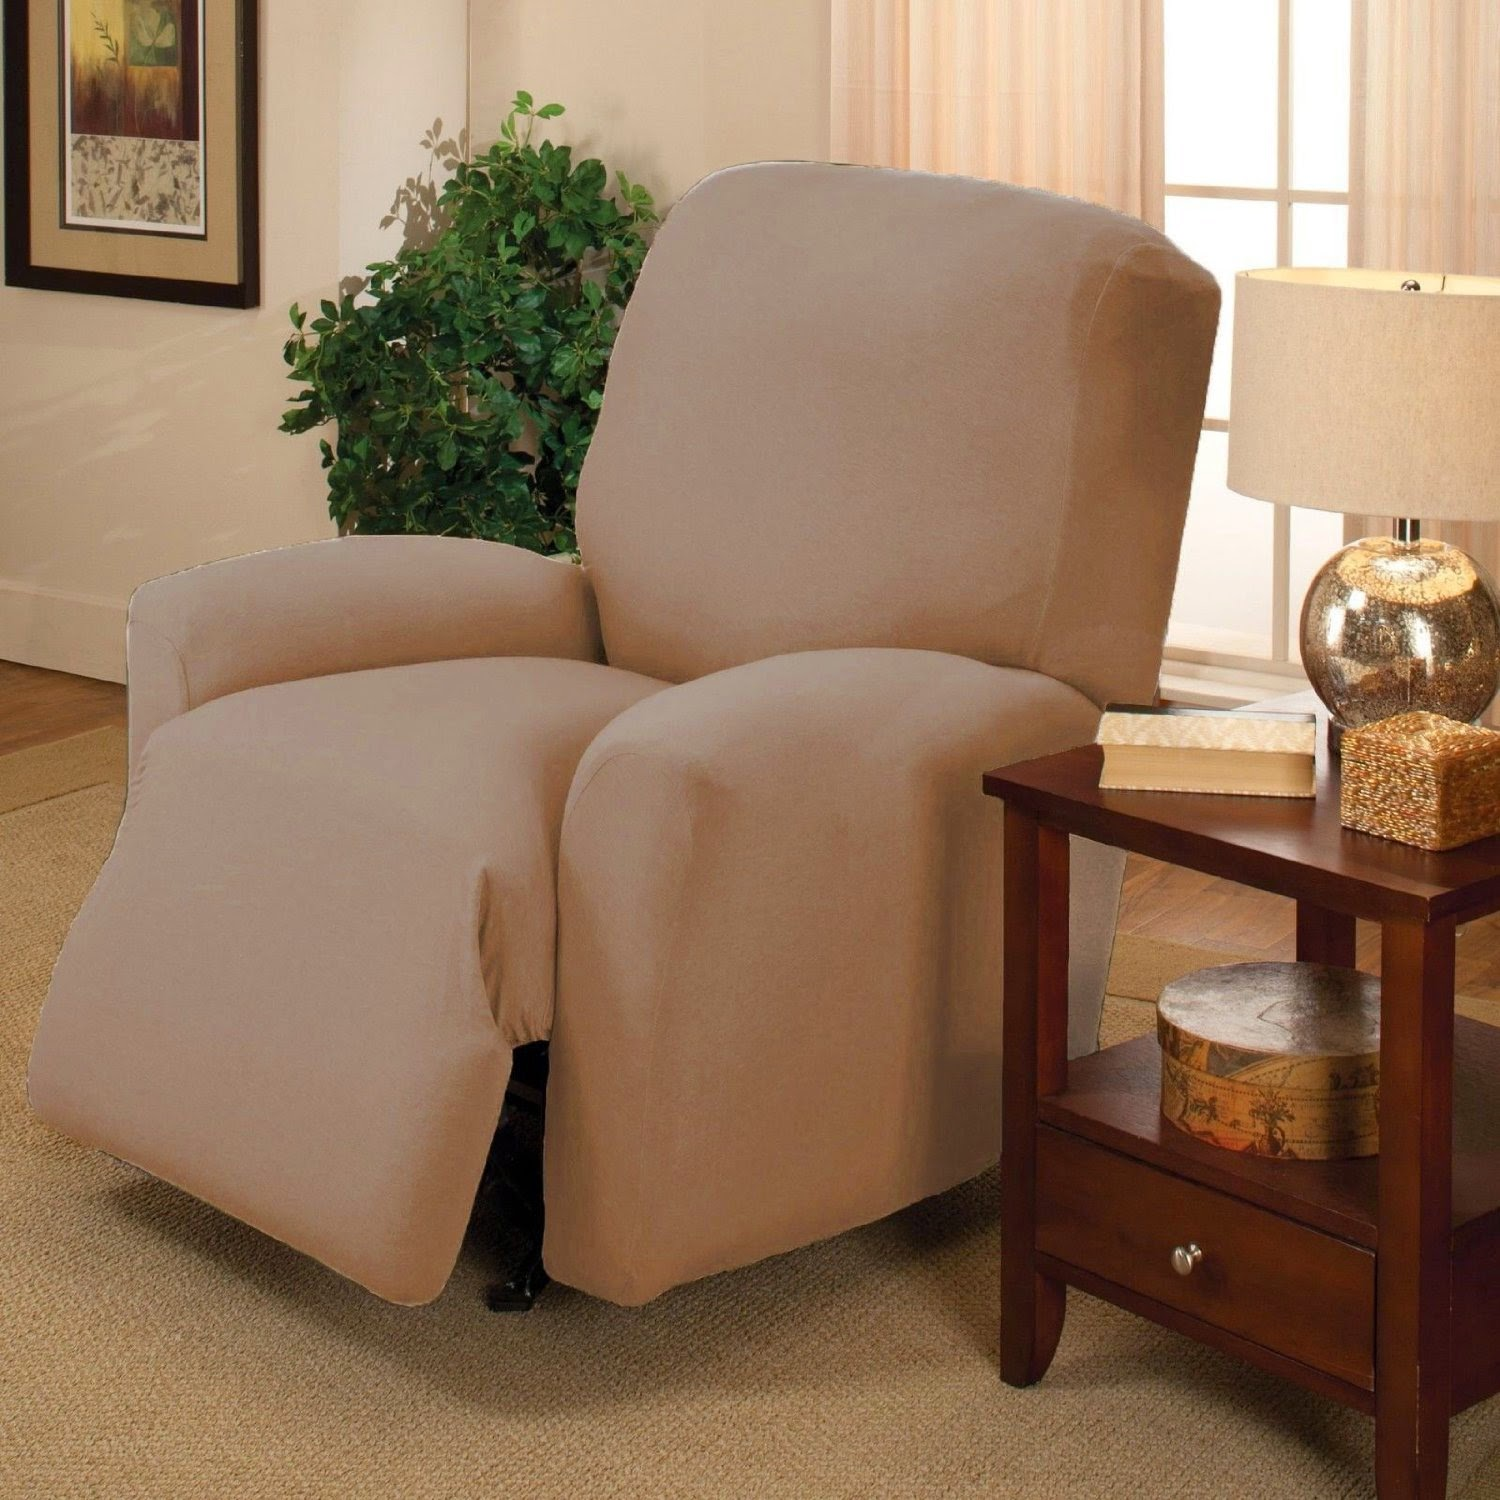 Cream Double Recliner Couch Slipcovers